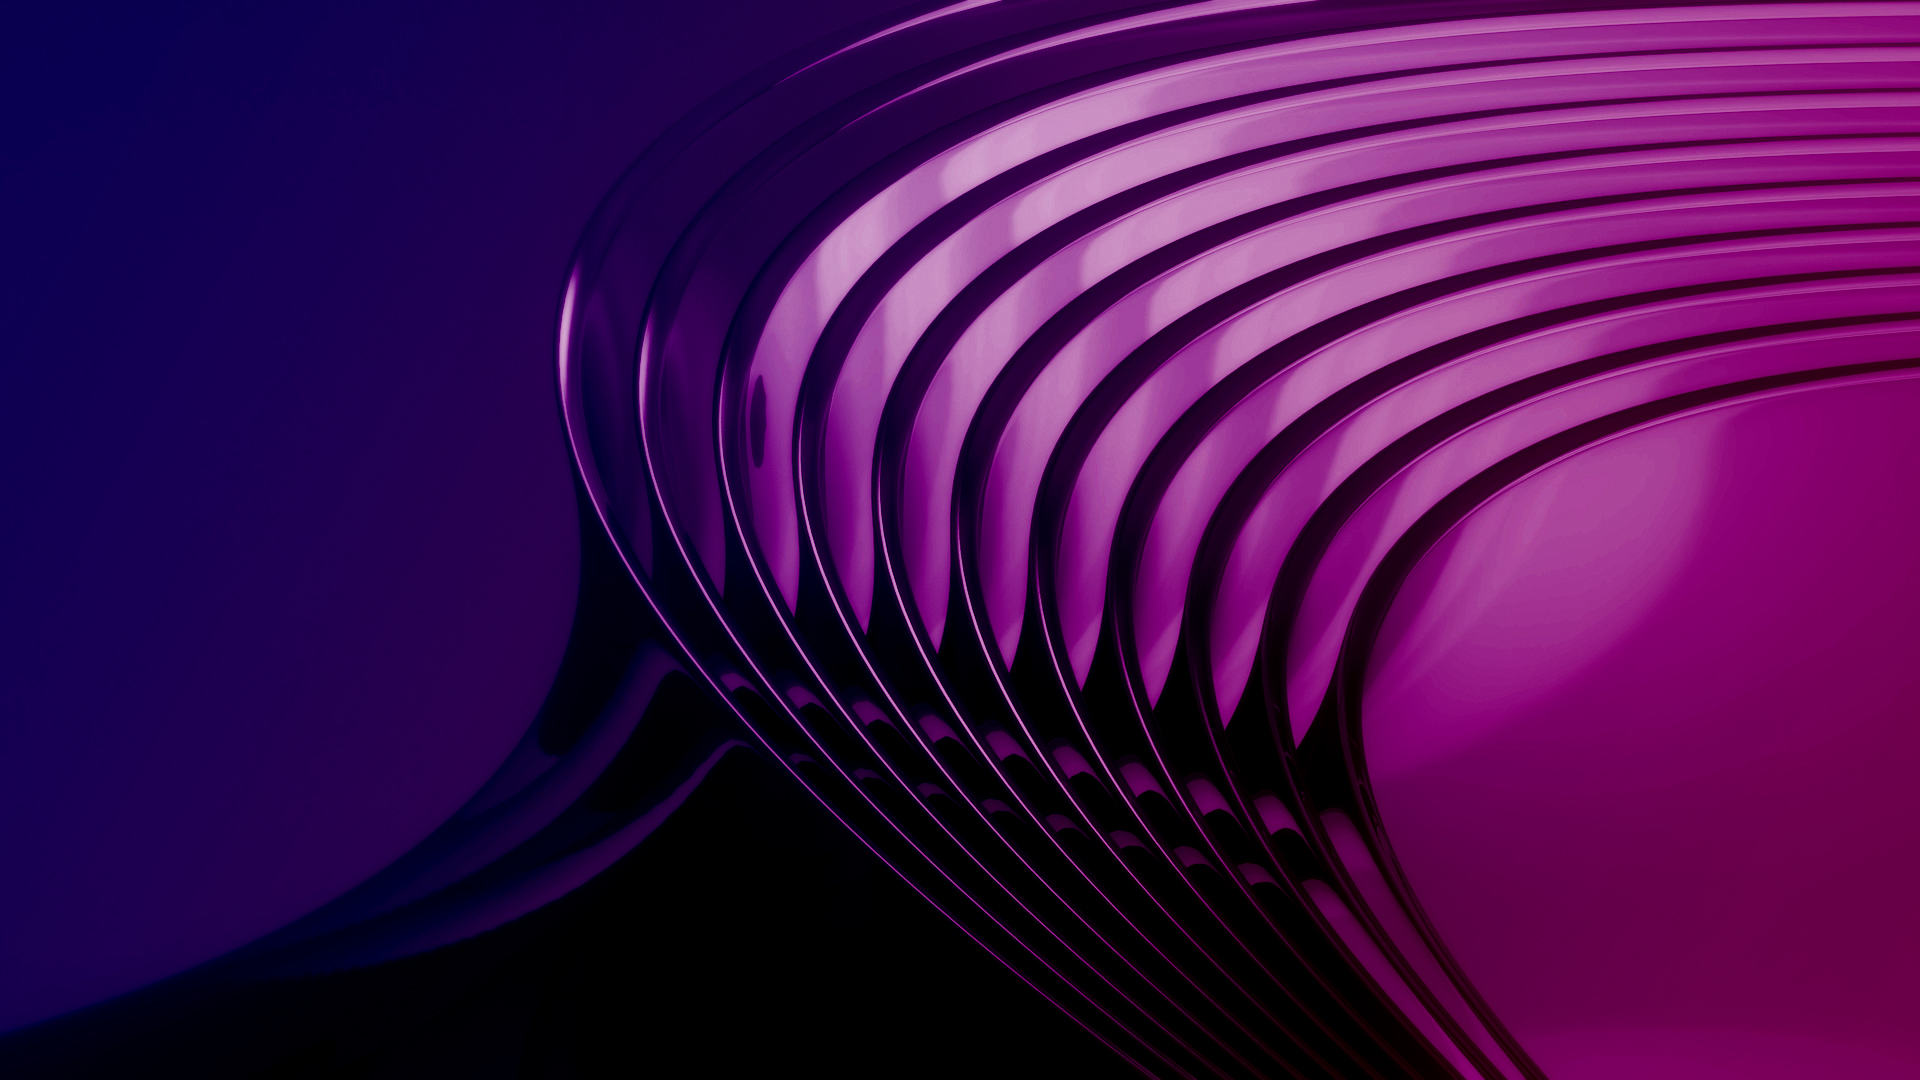 Purple Curves Wallpapers